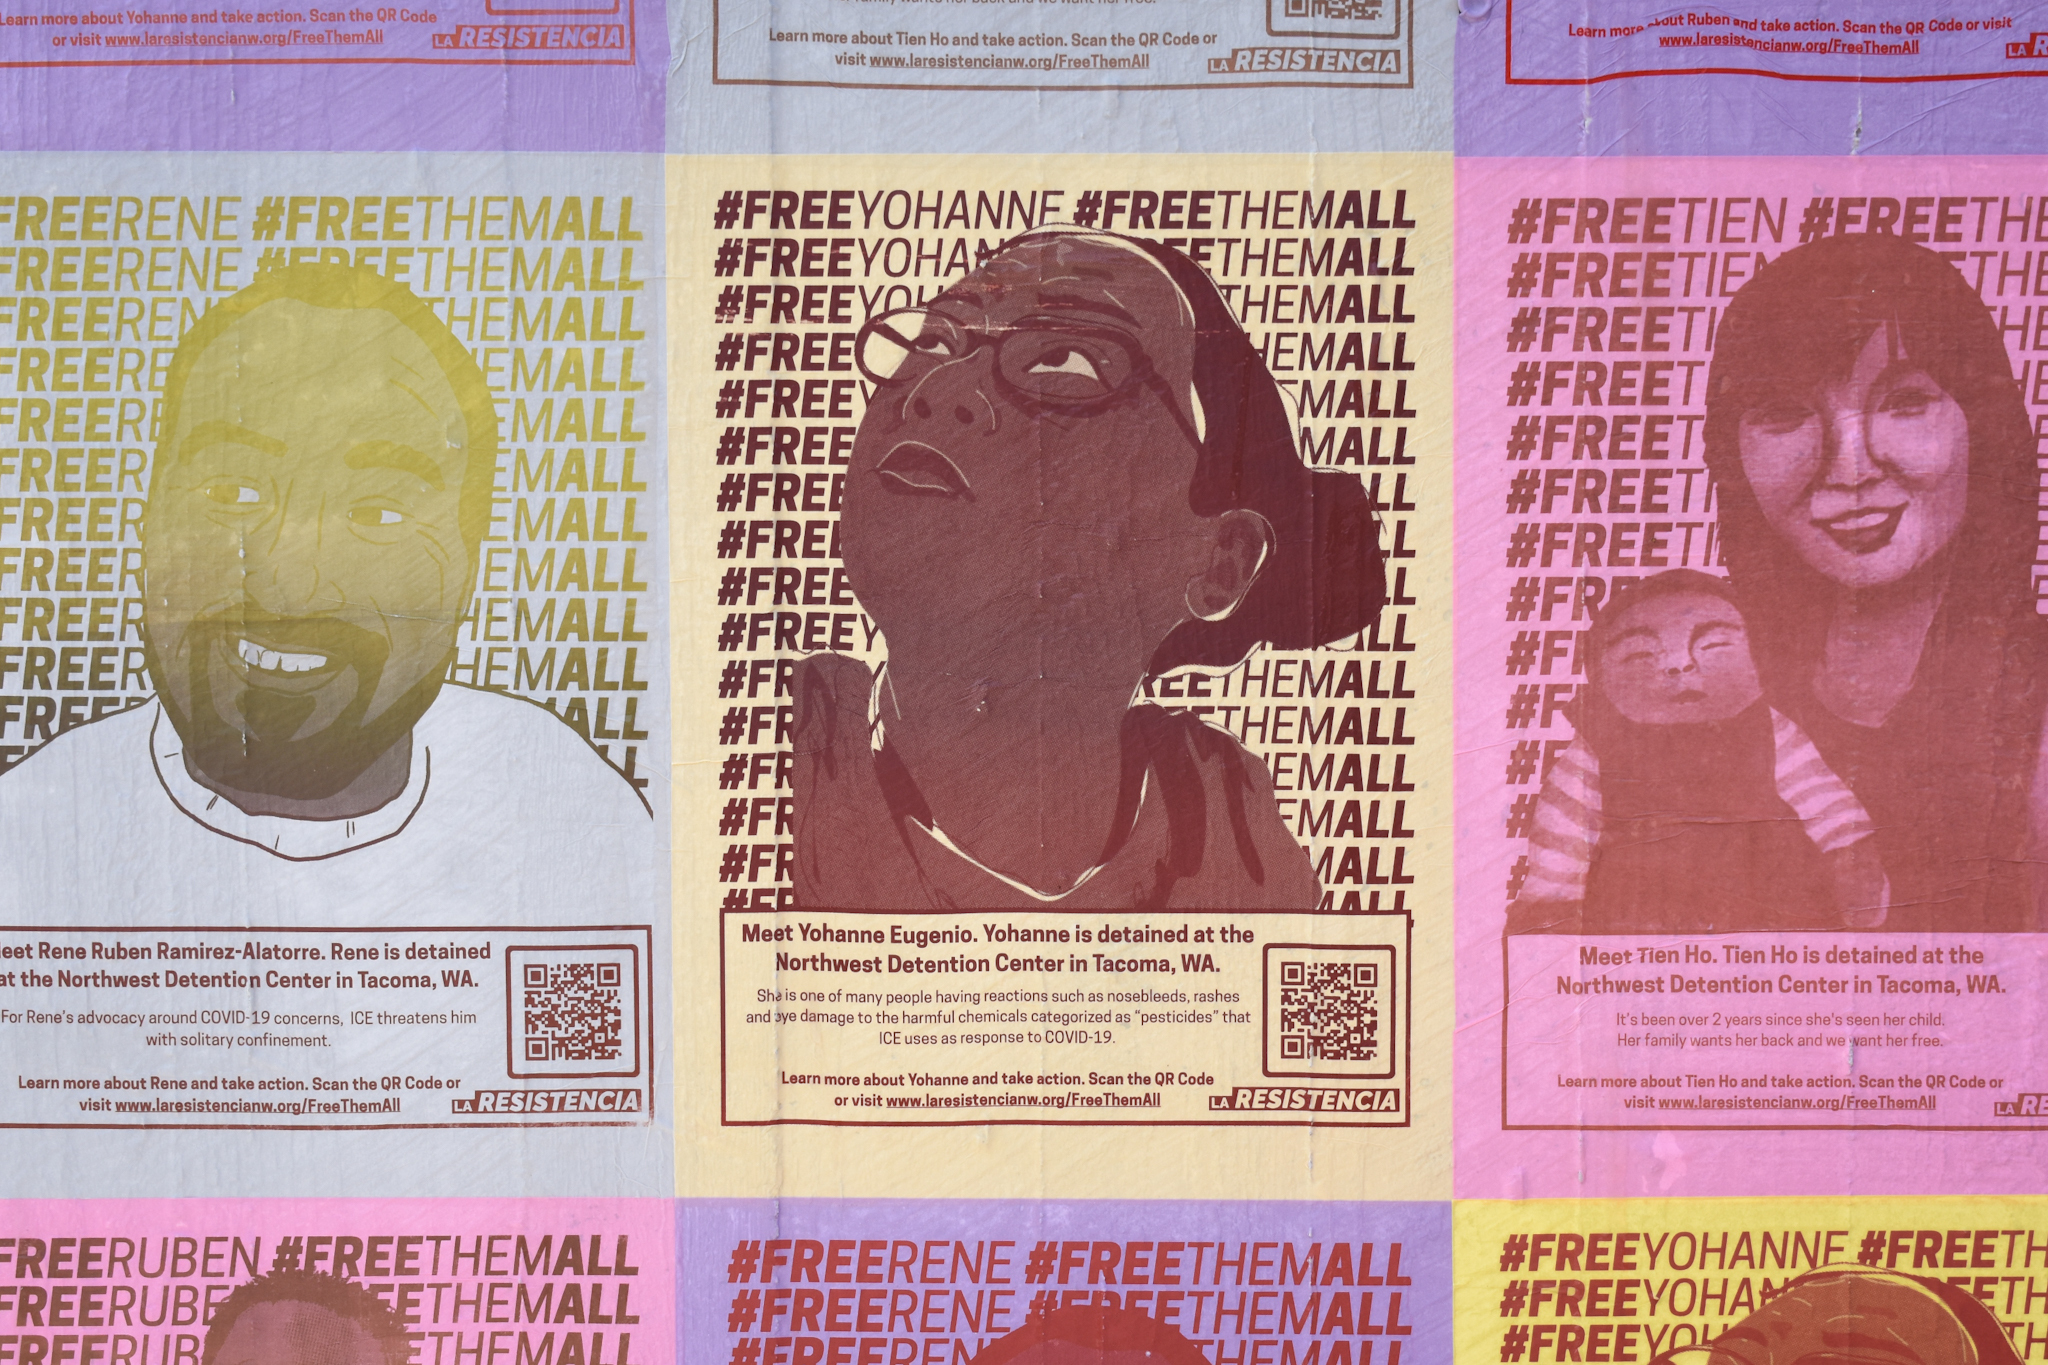 A grid of rectangular, colorful posters, each with a monochromatic illustration of a different person. Behind each portrait are two repeated columns of text. On the right, the text reads #FREETHEMALL. On the left, the text reads #FREE and the person's name, for example, #FREEYOHANNE and #FREERUBEN. Below the portraits is more text and a QR code. The text introduces the person and says that they are detained at the Northwest Detention Center in Tacoma, WA.